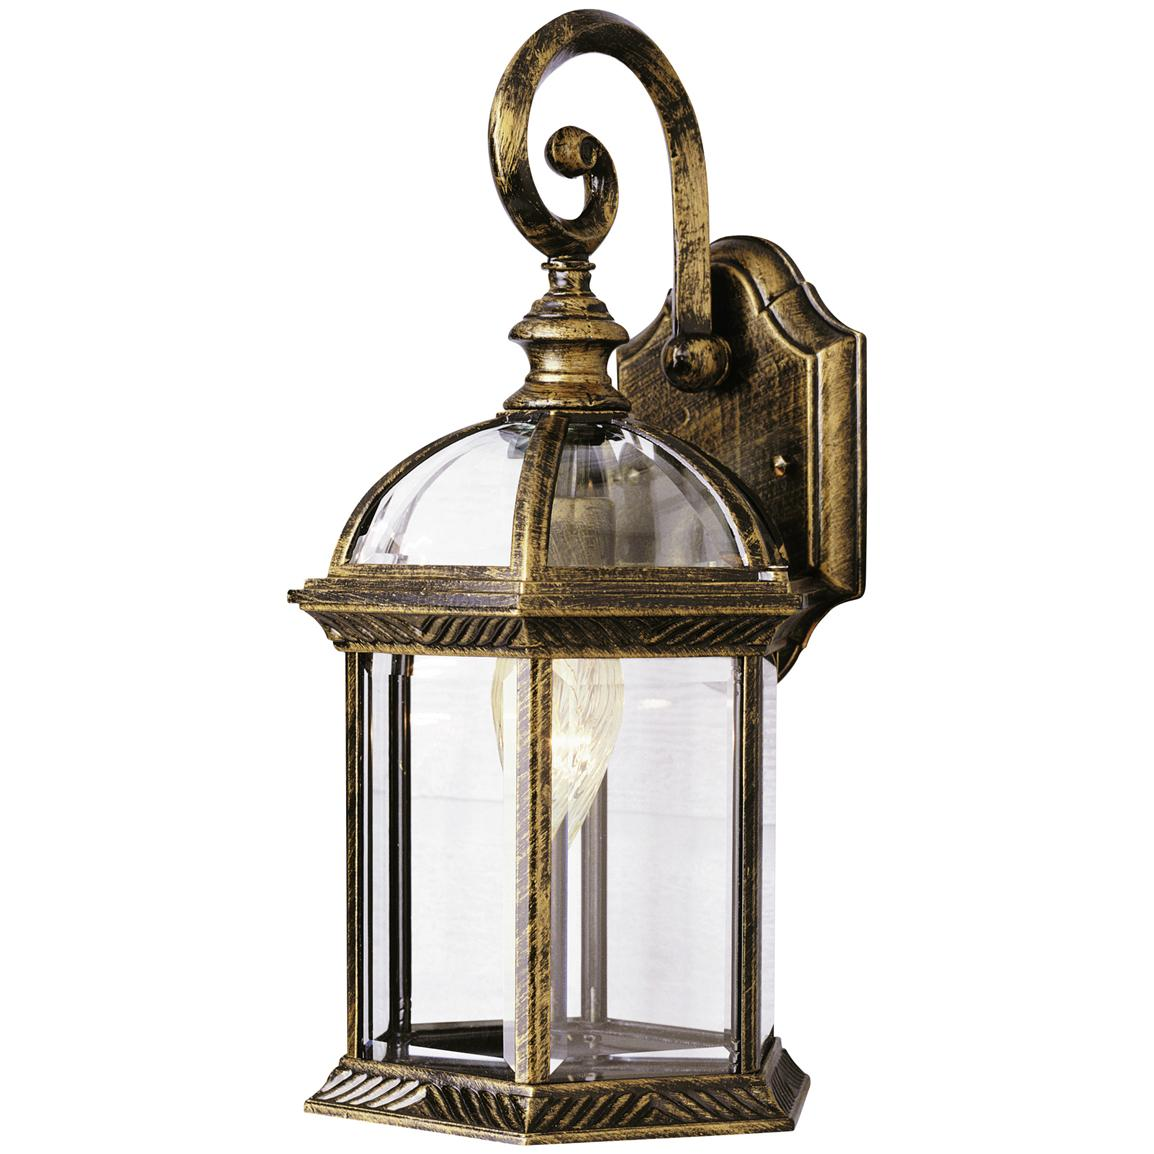 Trans Globe Lighting 1 - Light Outdoor Black and Gold Wall Lantern - 173596, Solar & Outdoor ...